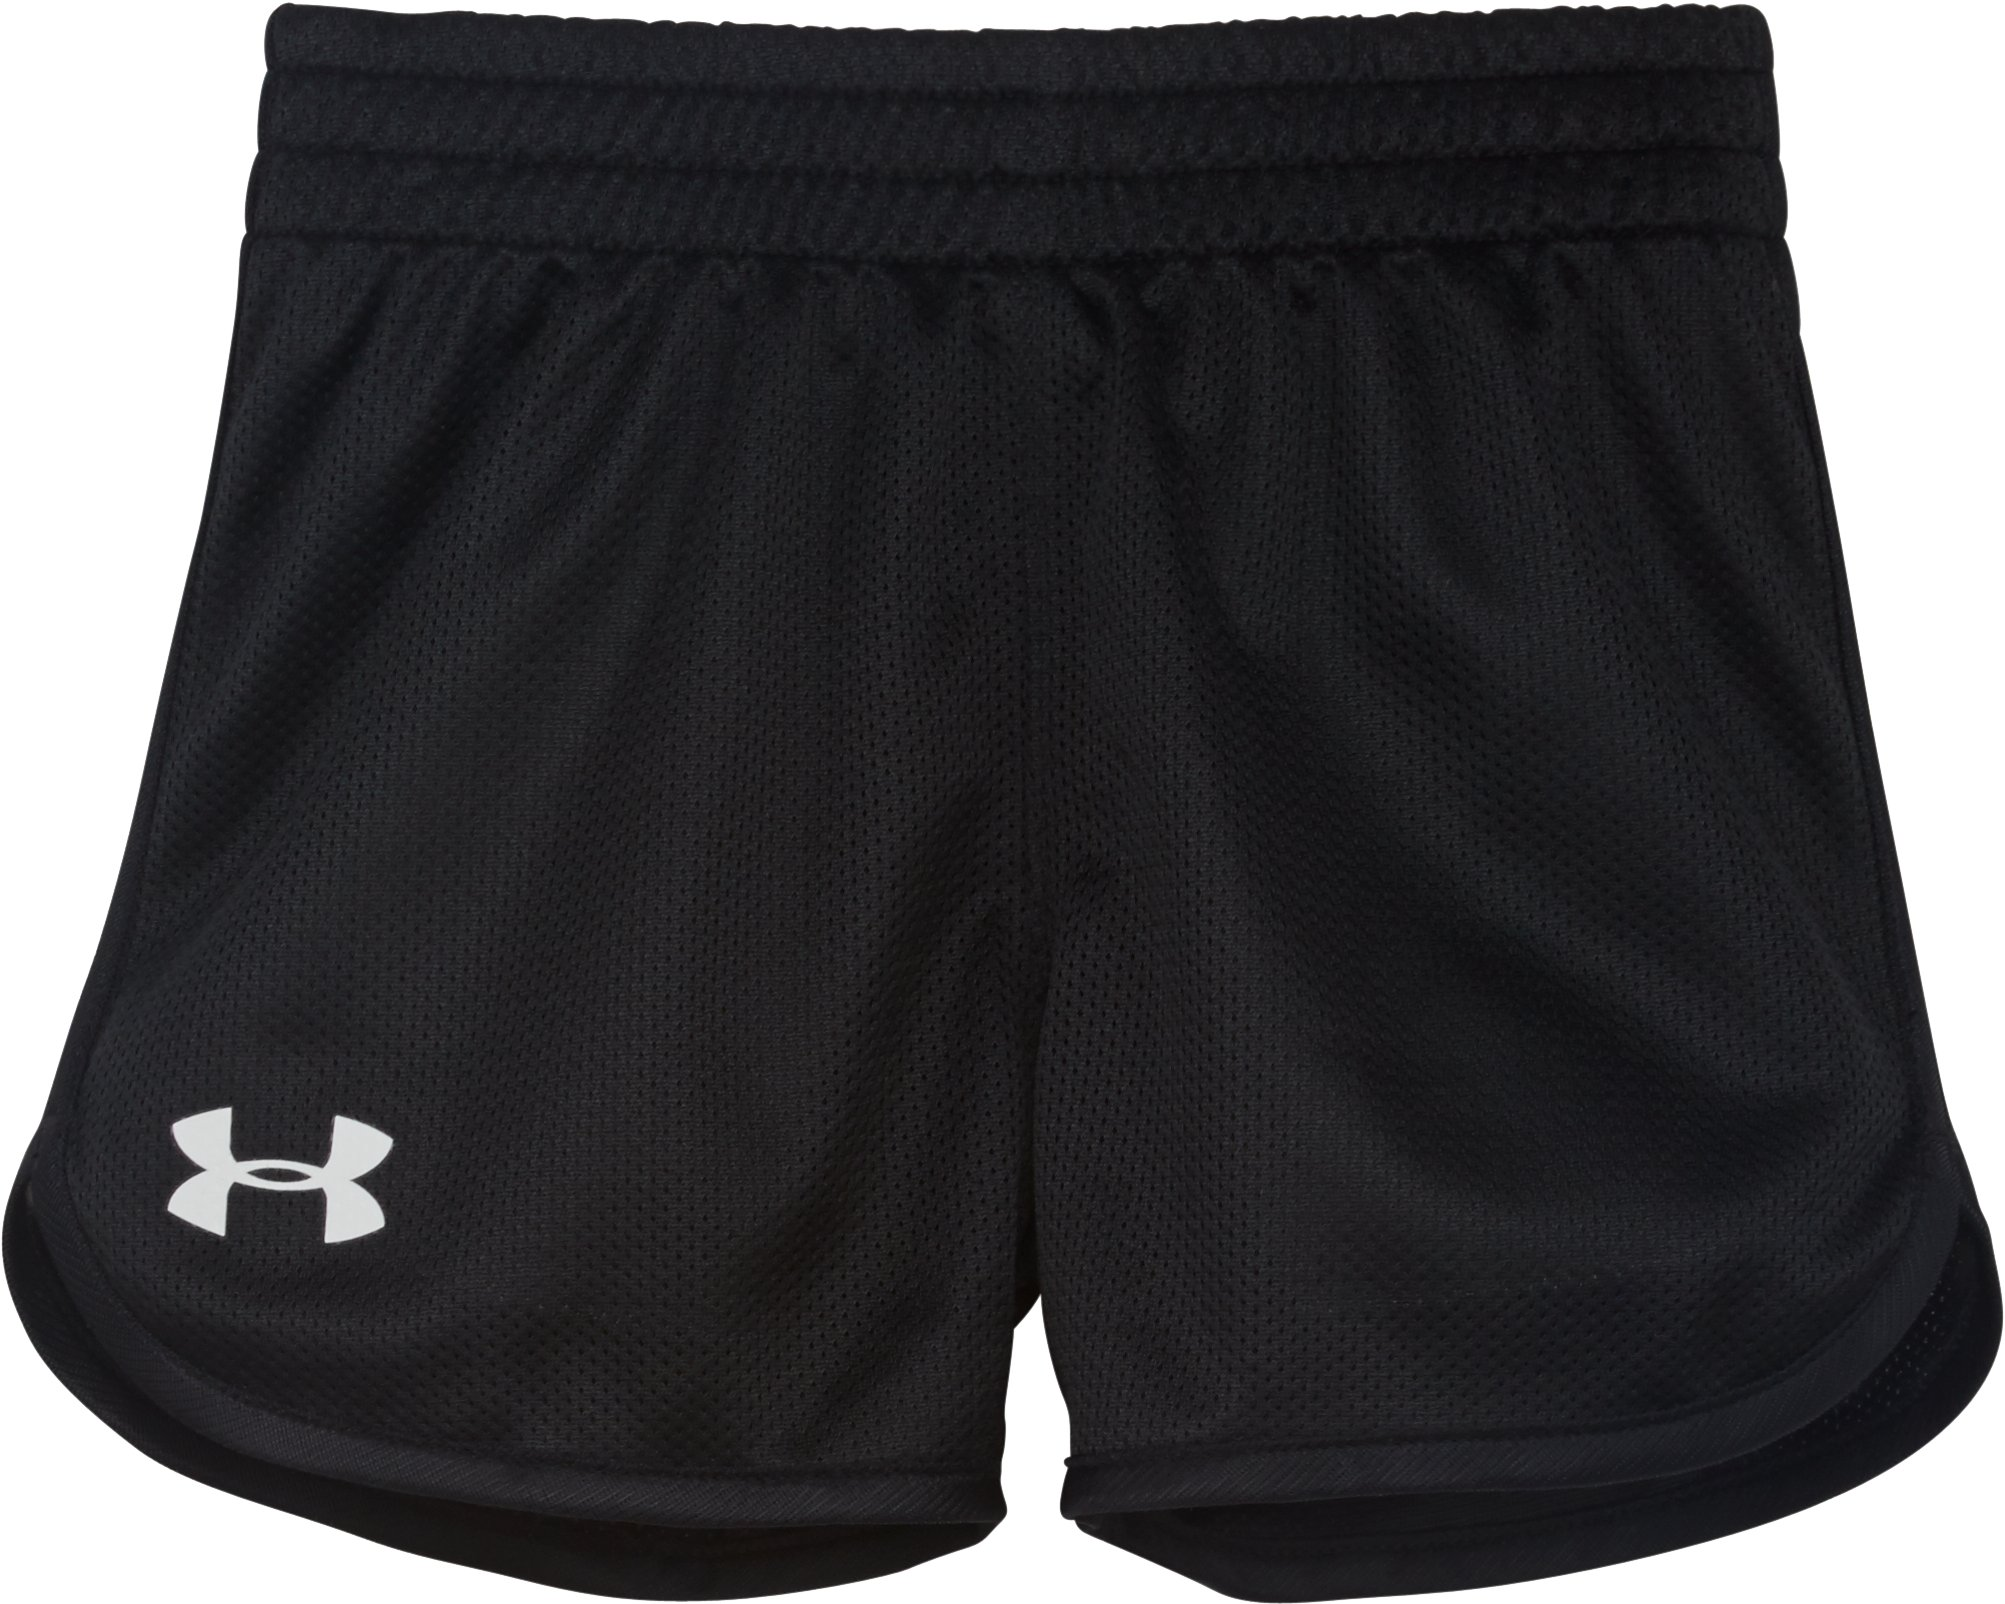 Girls' Toddler UA Essential Shorts, Black , zoomed image